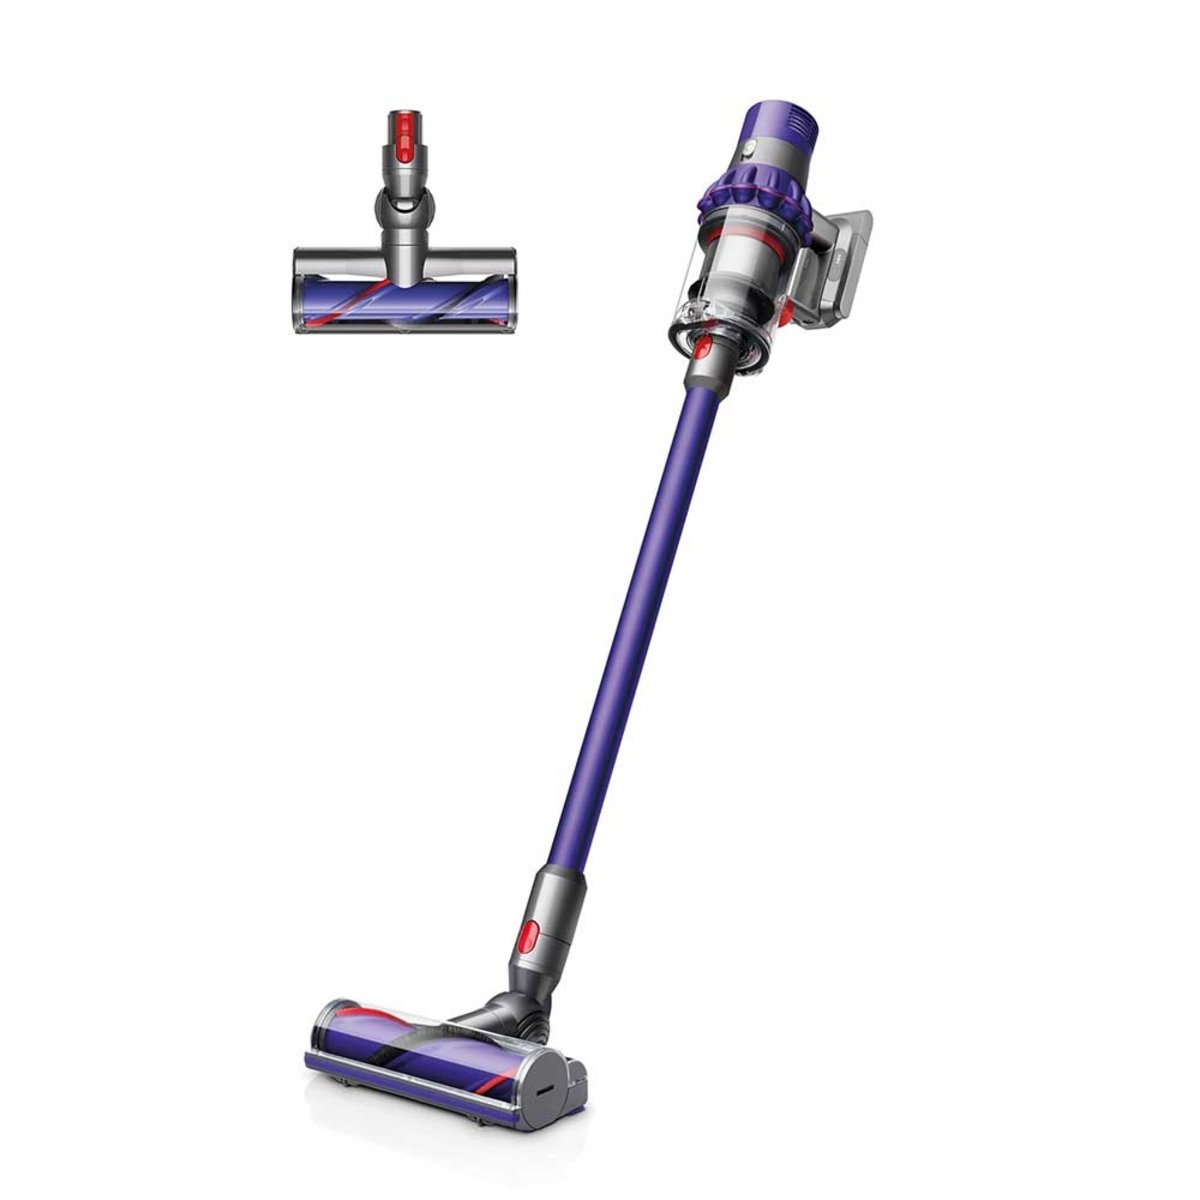 Cyclone V10 Animal Cordless Vacuum Cleaner